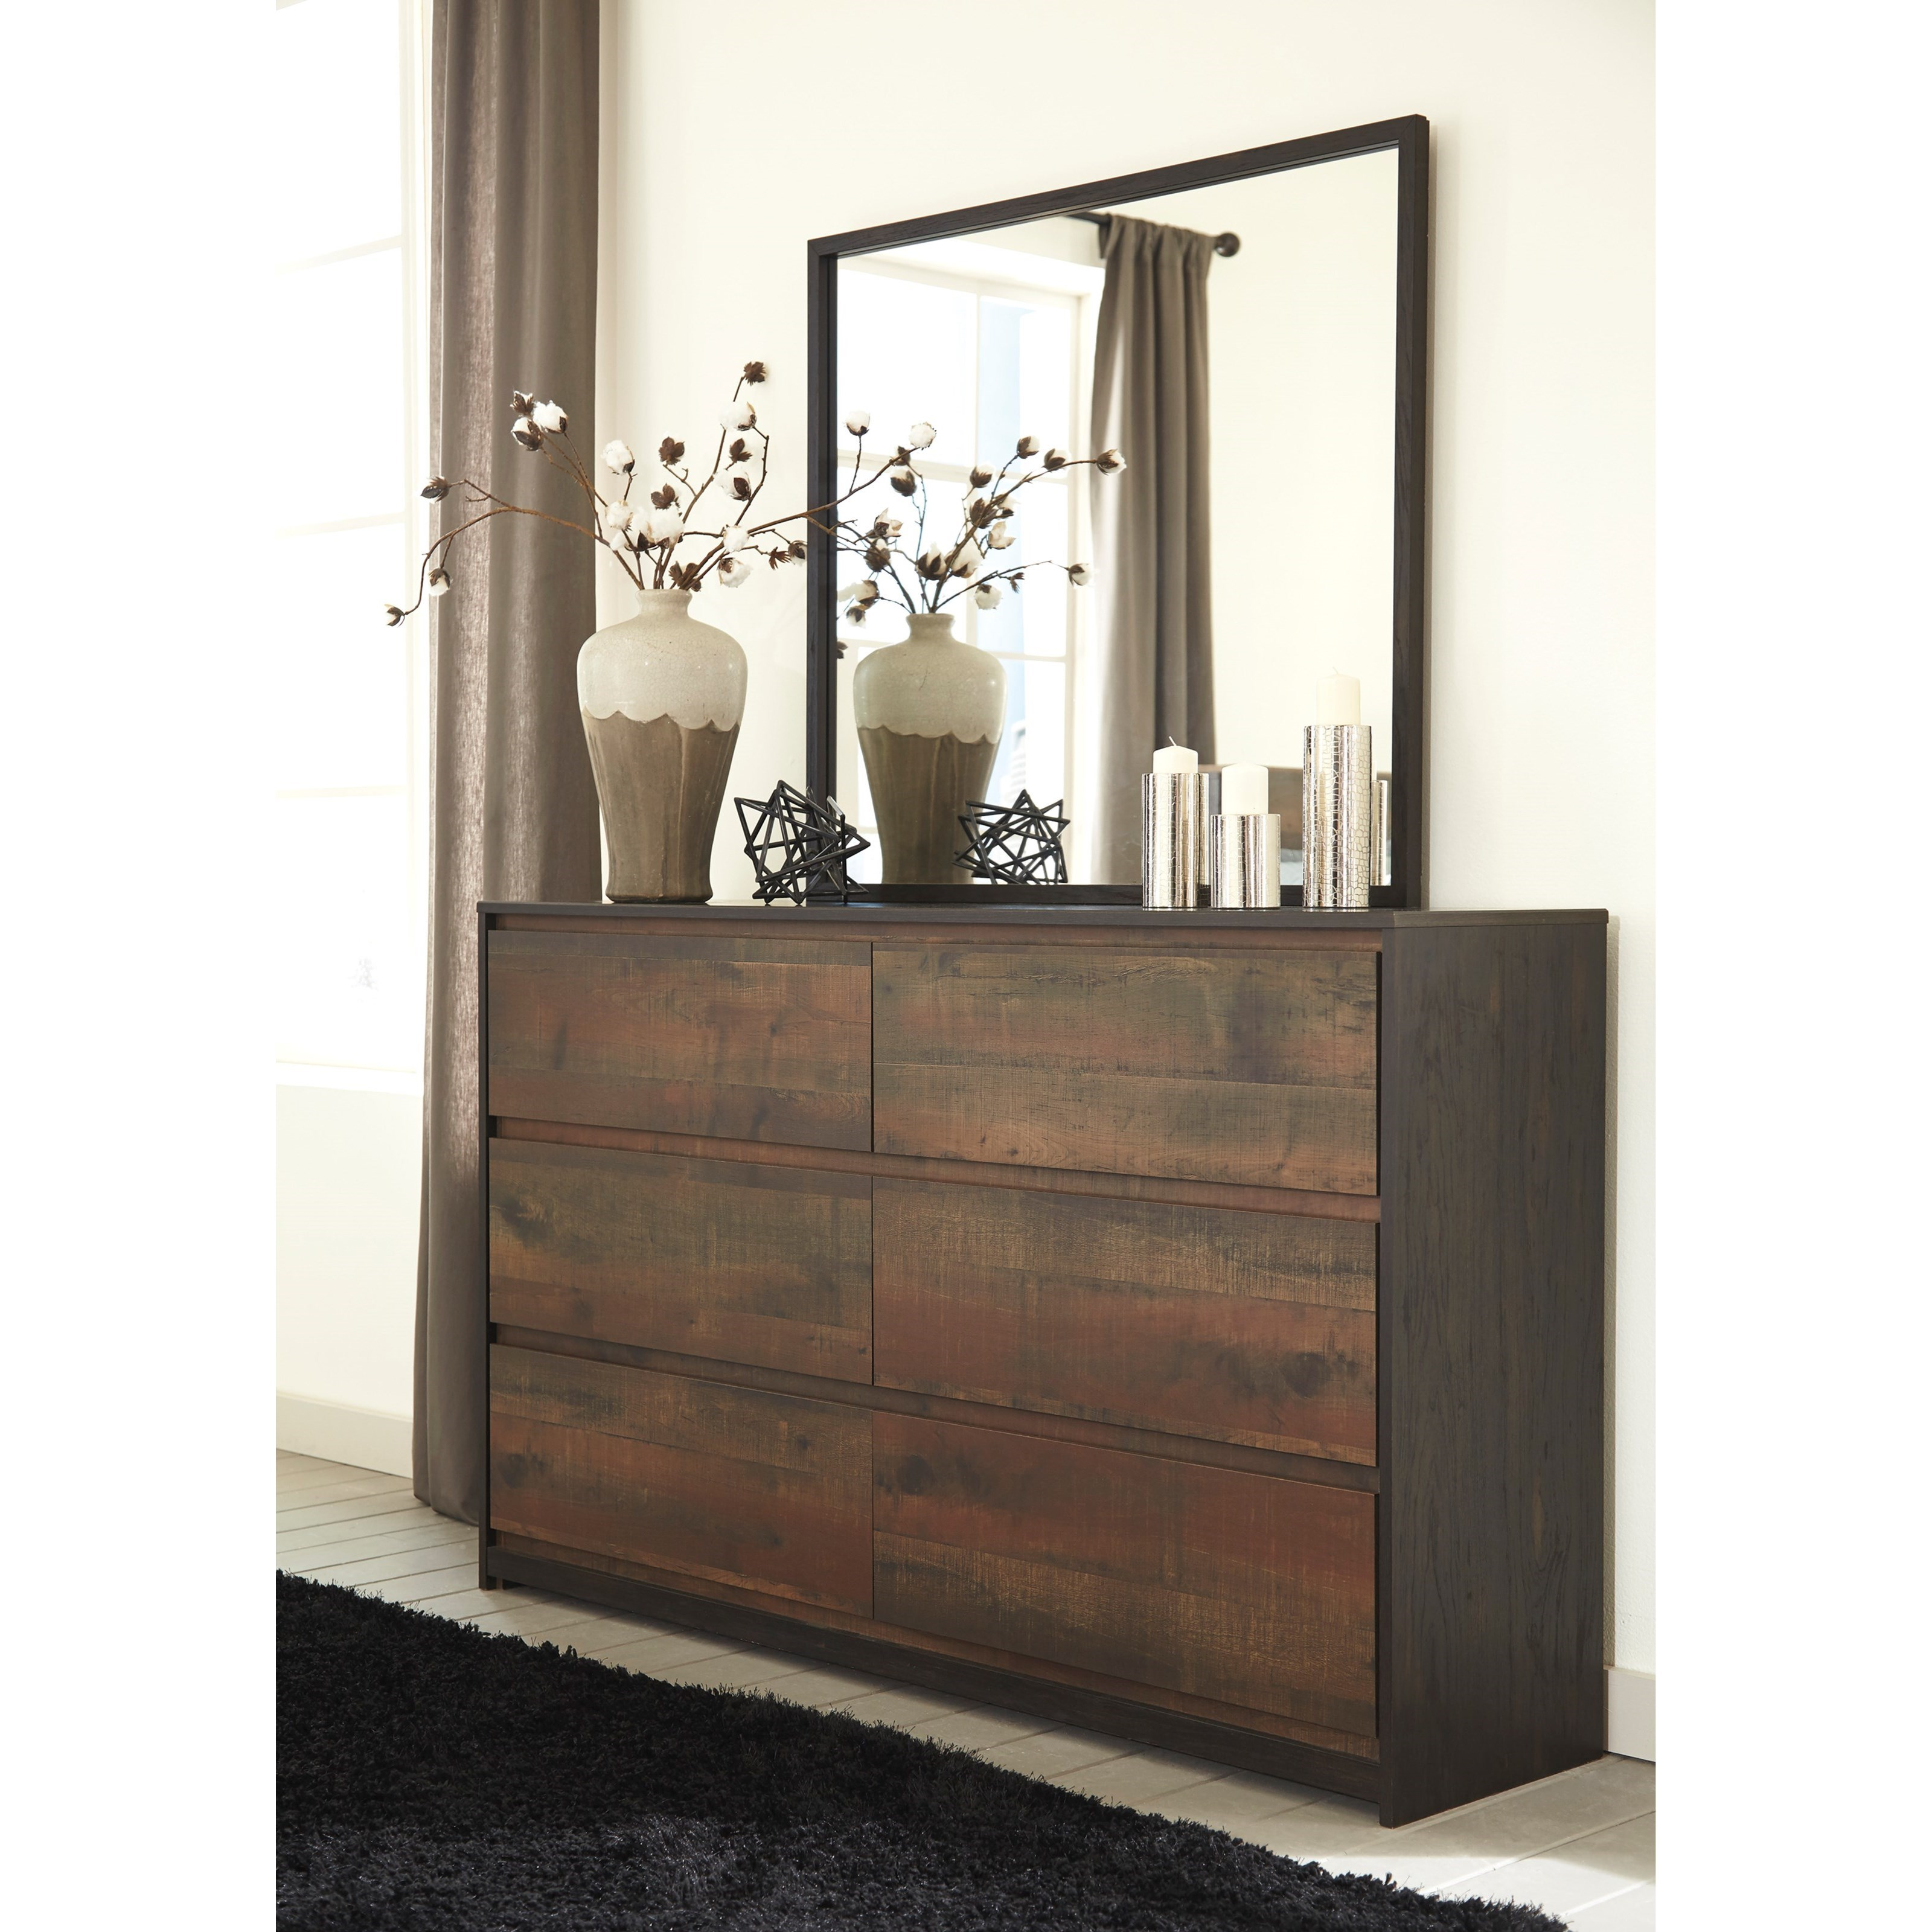 Signature design by ashley windlore b320 36 bedroom mirror for Ashley furniture appleton